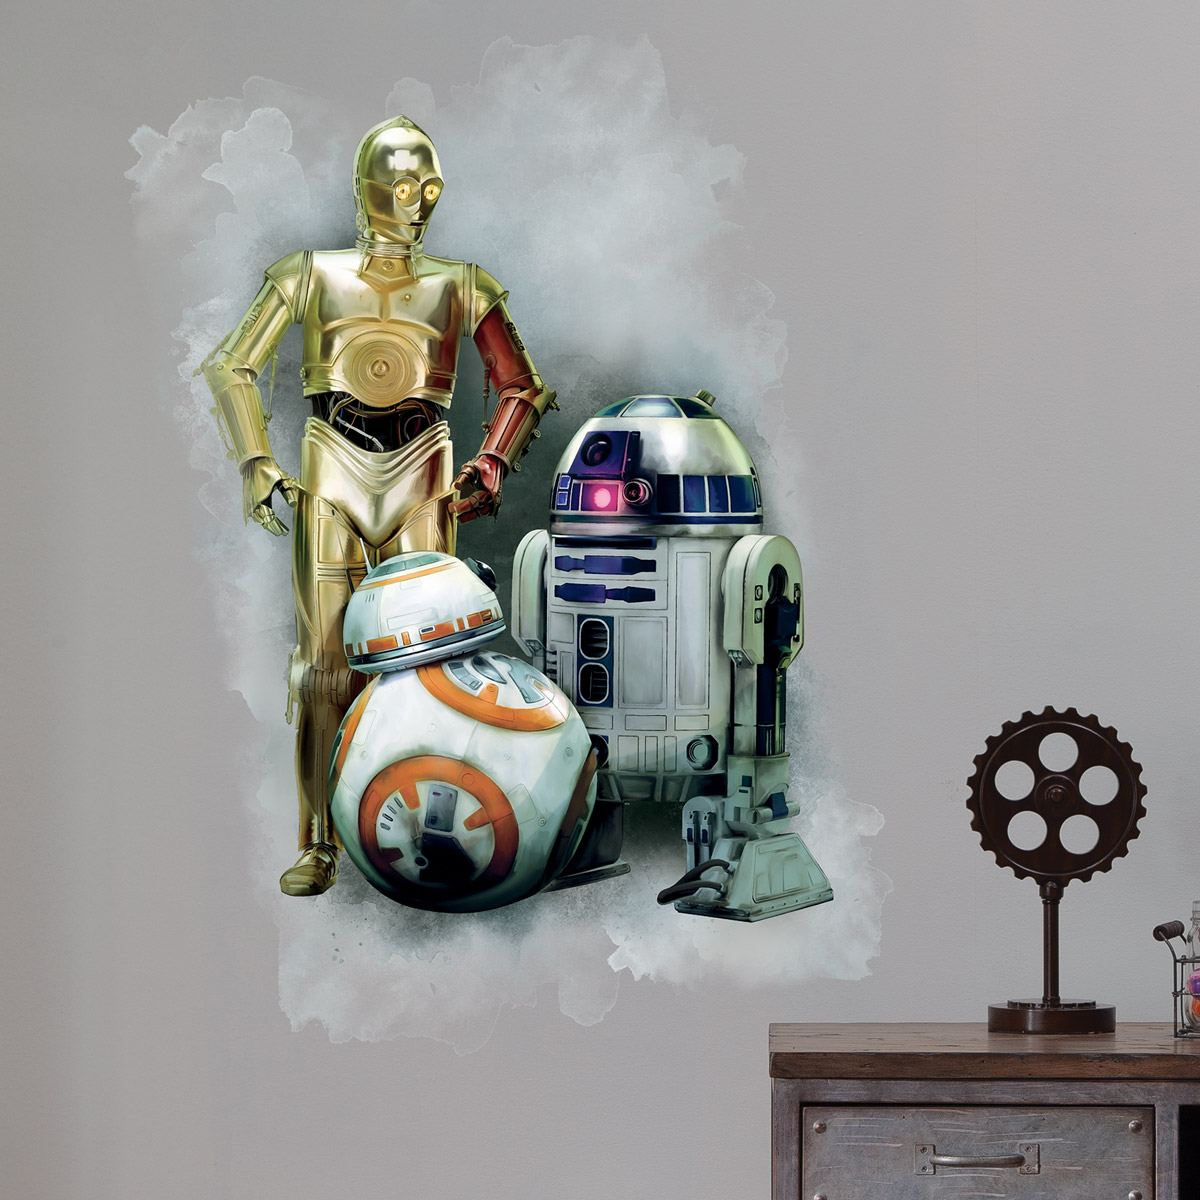 wandtattoo r2d2 c3po und bb. Black Bedroom Furniture Sets. Home Design Ideas